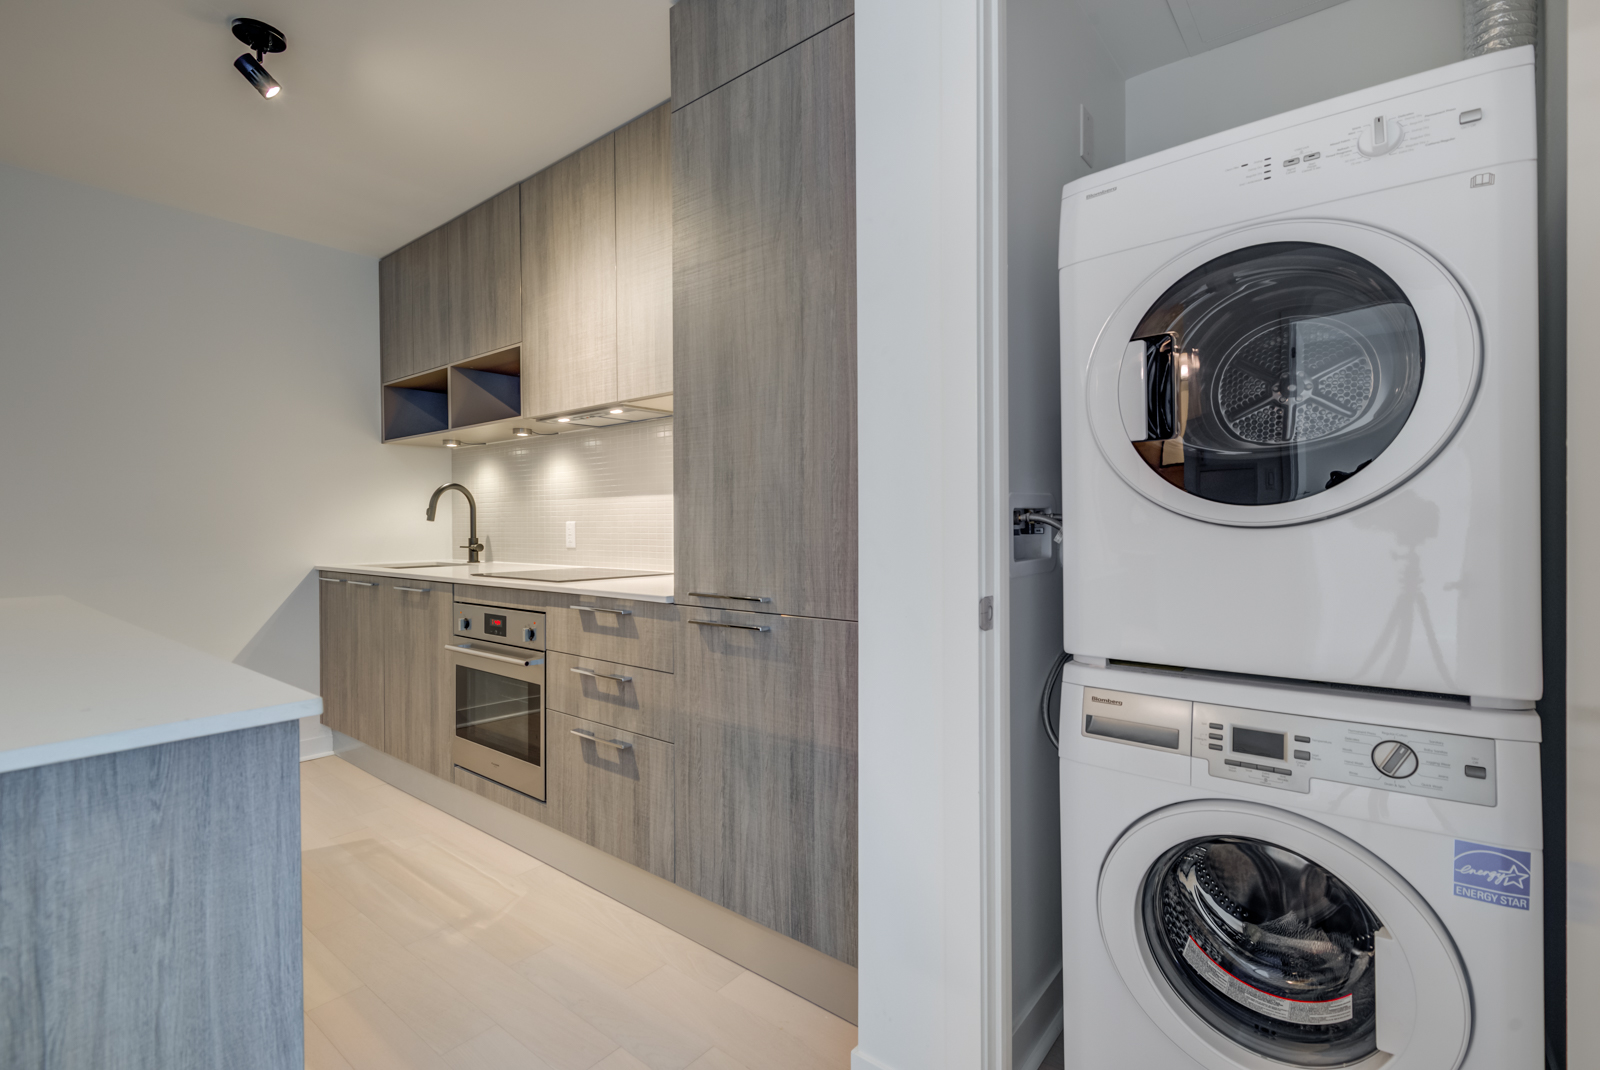 Open laundry closet showing stacked white washer and dryer plus kitchen to its left.